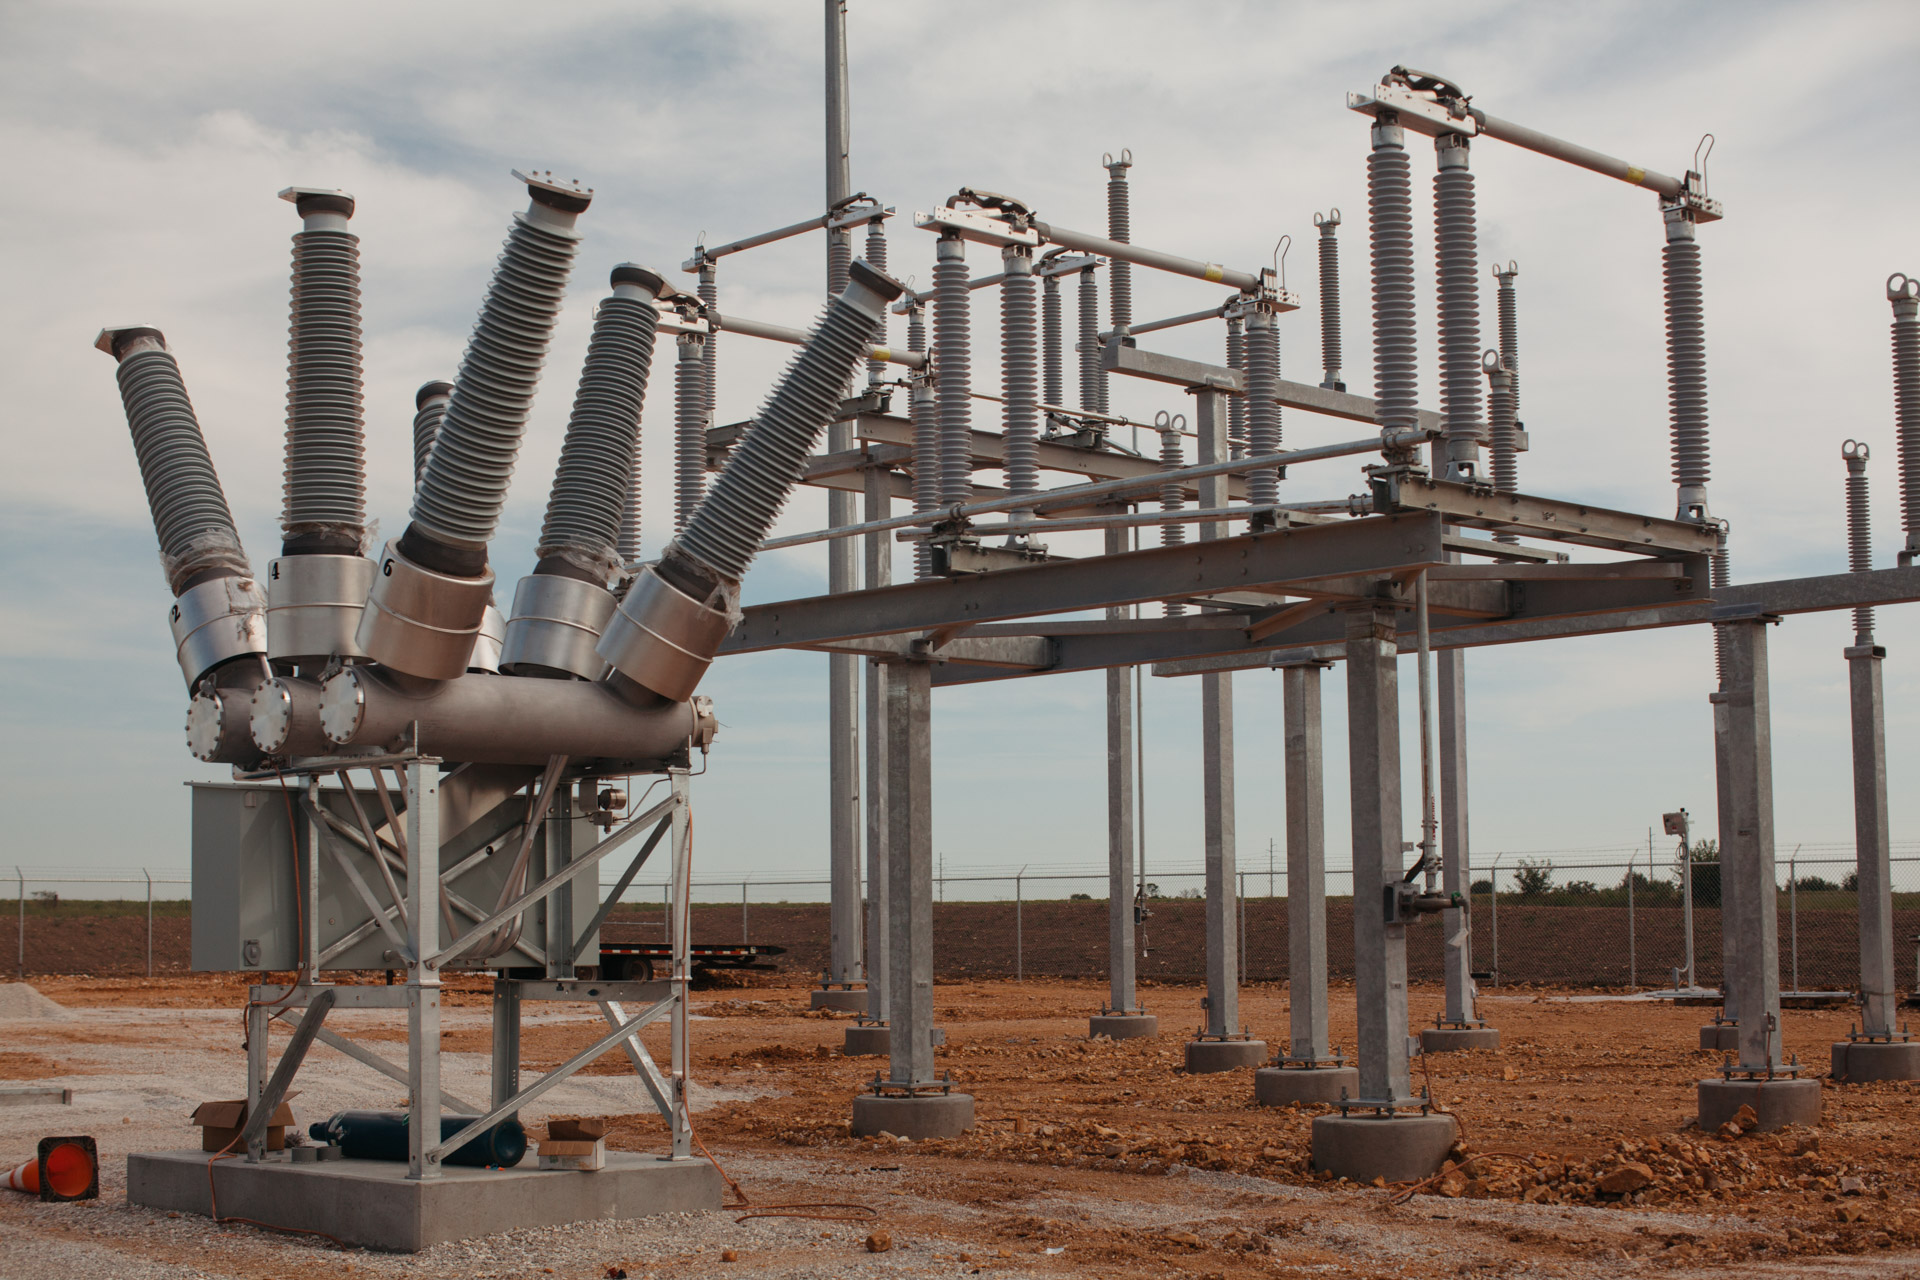 Image of Empire Substation in Joplin, MO during construction.